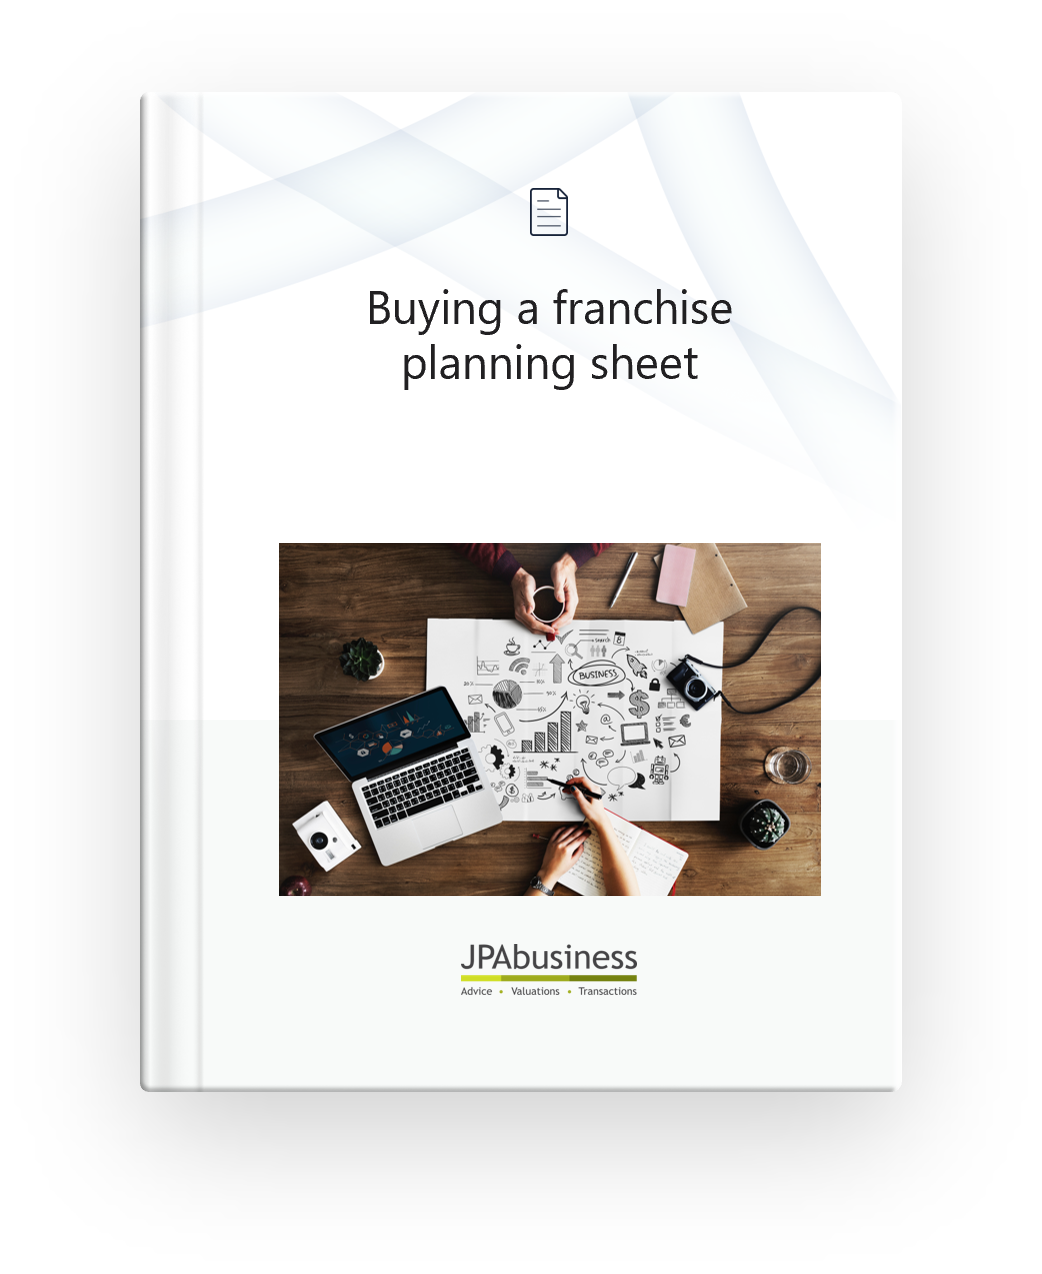 Buying a franchise planning sheet | JPAbusiness